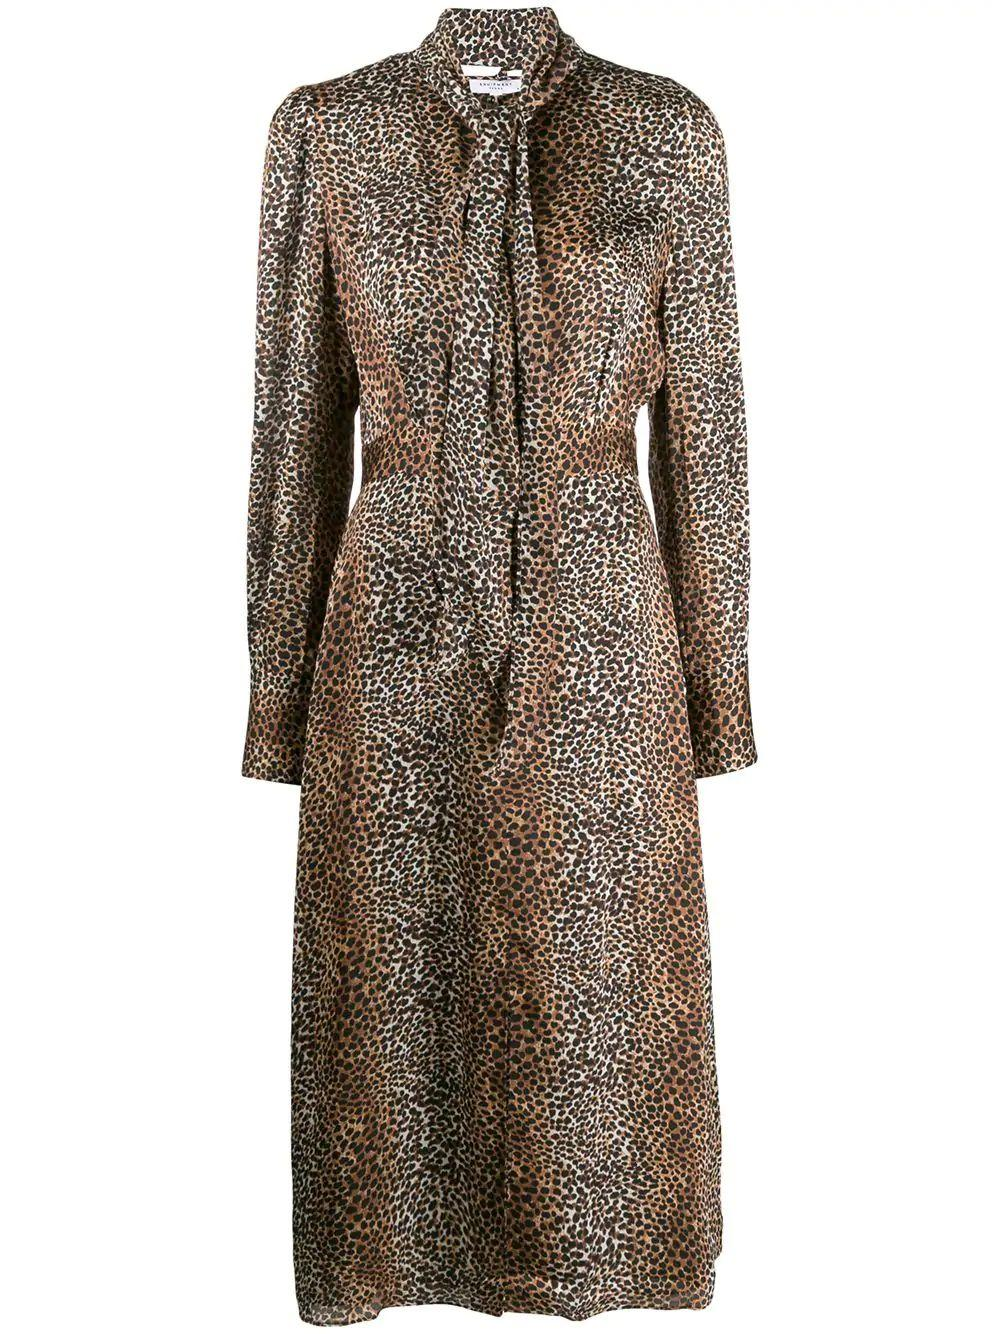 Calanne Animal Print Keyhole Long Dress